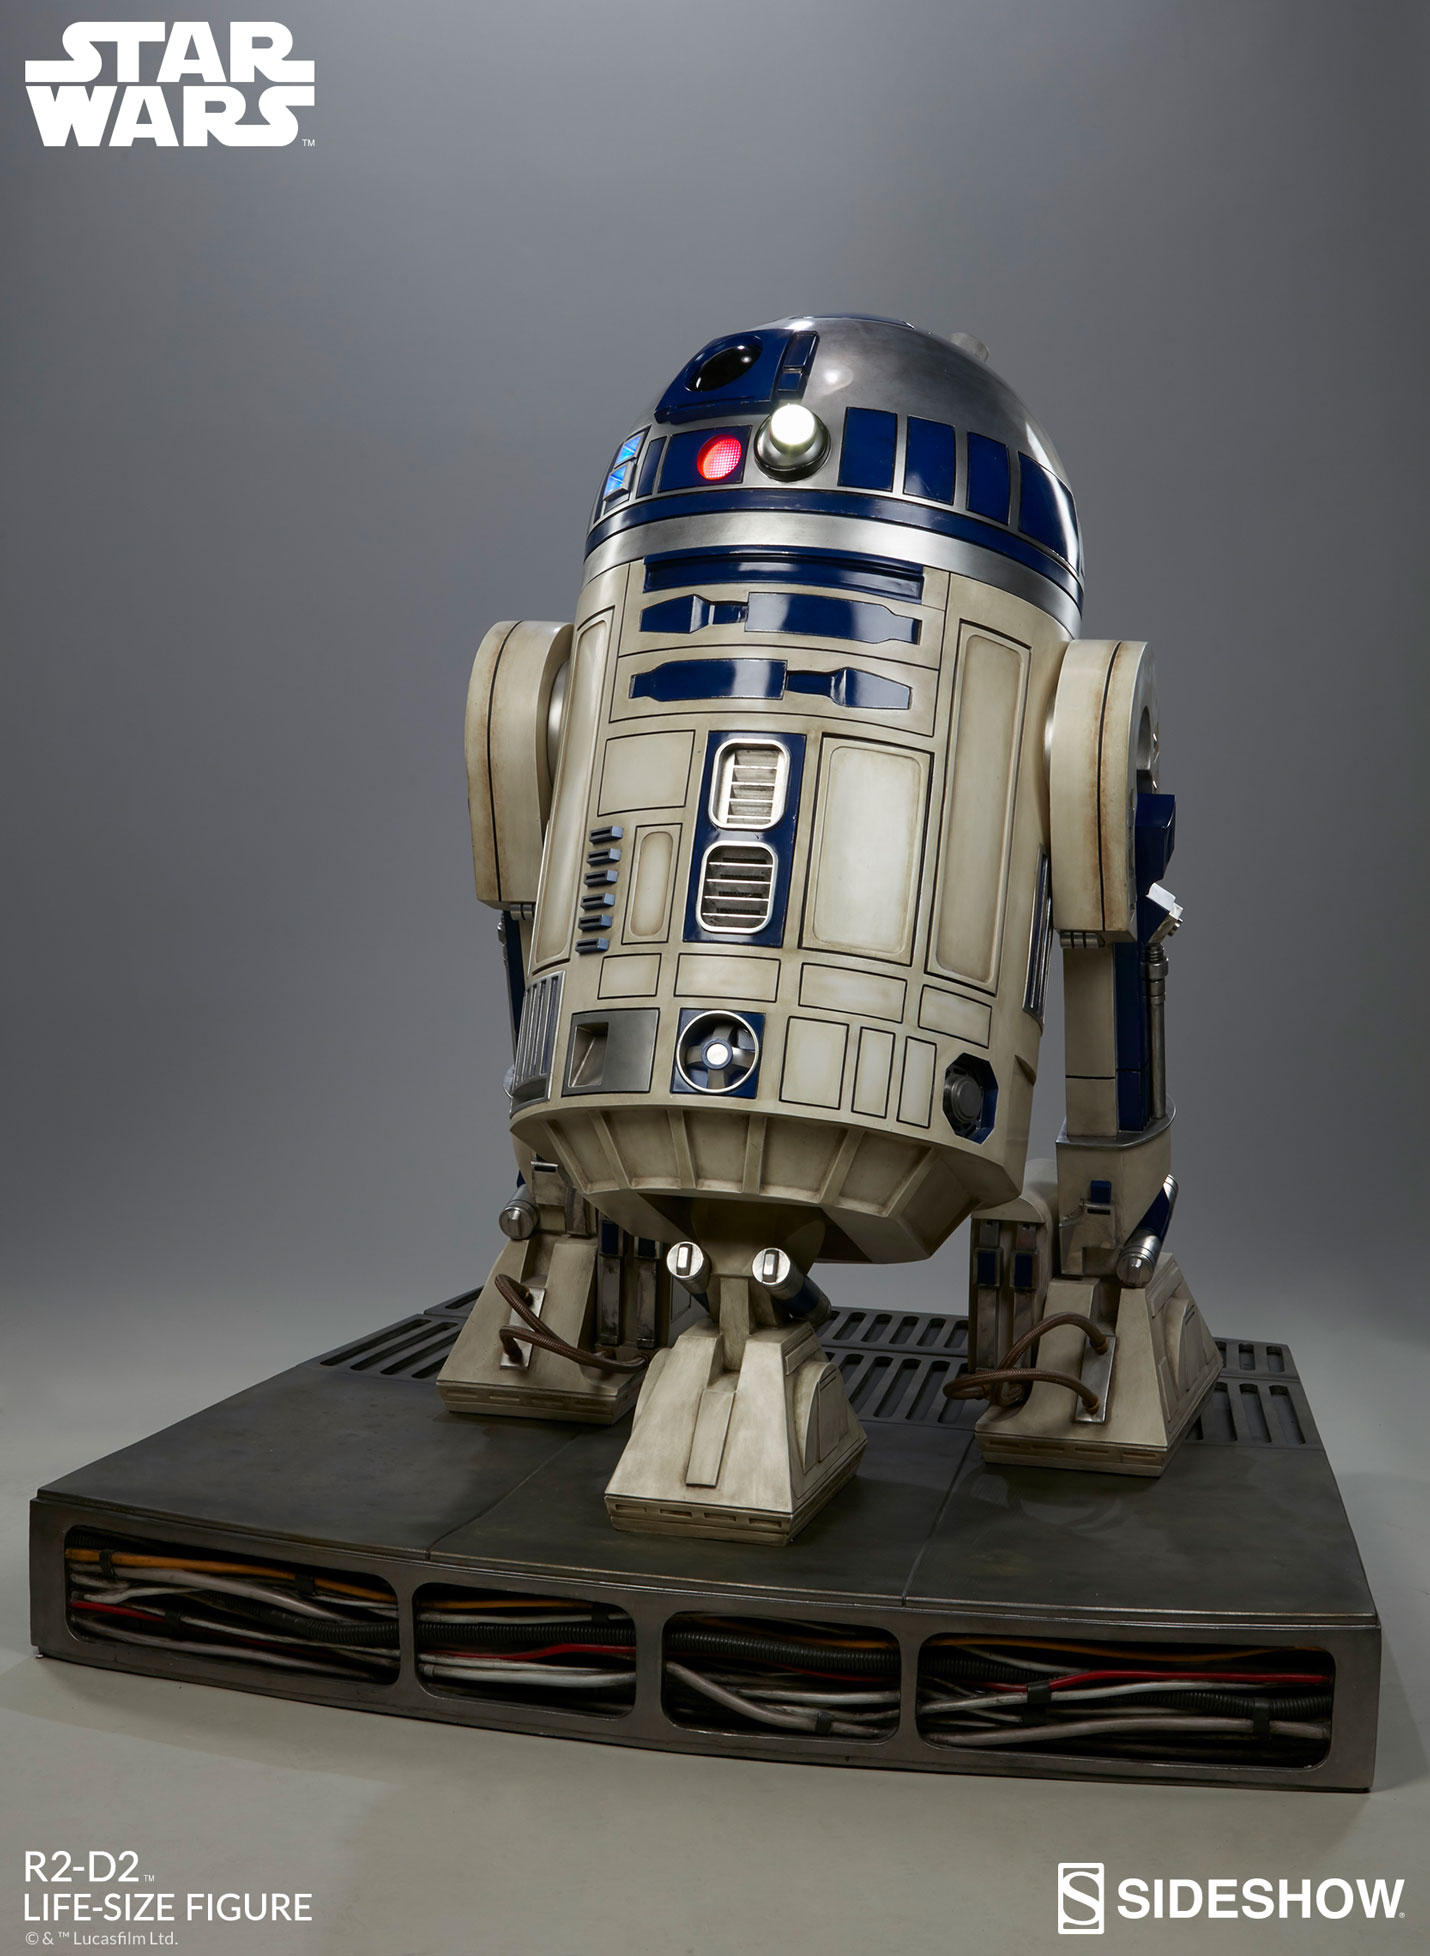 star wars r2 d2 life size figure by sideshow collectibles sideshow